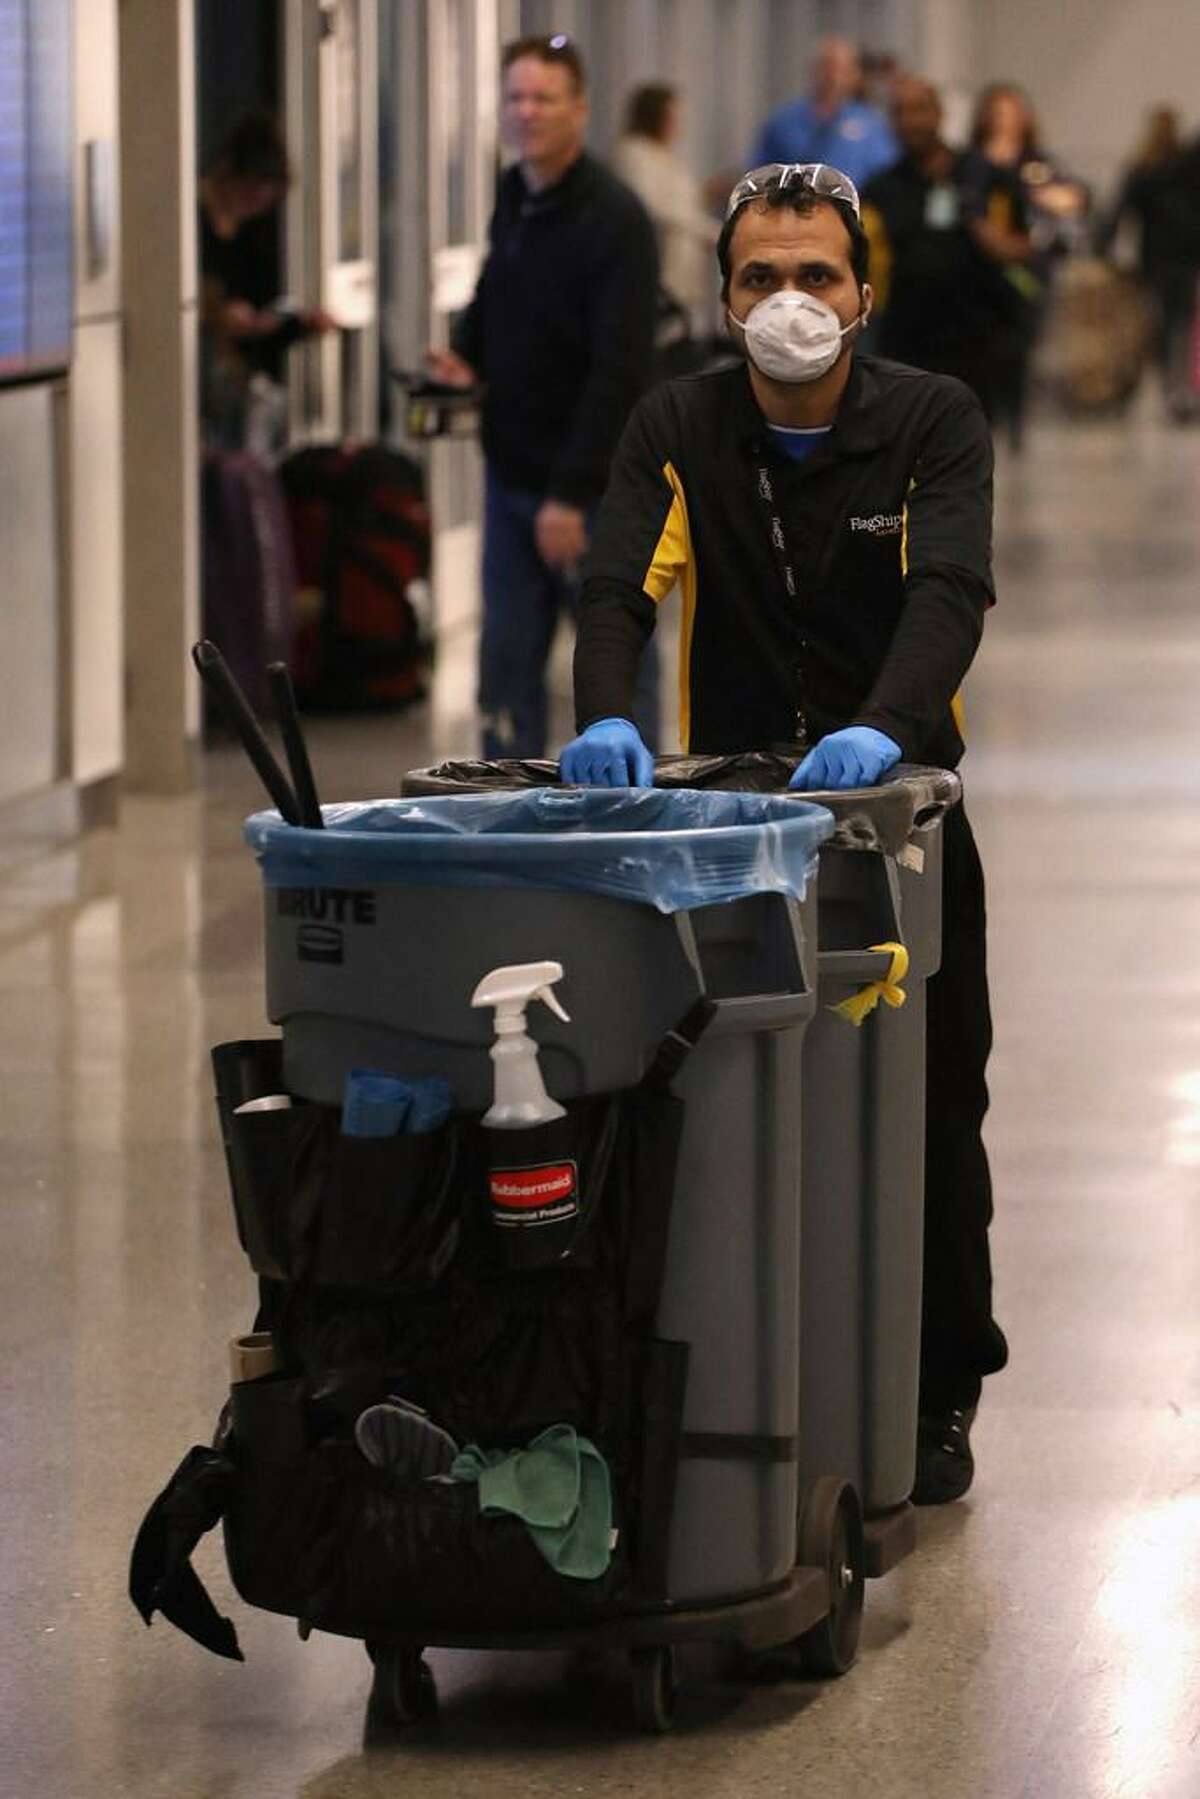 An airport employee cleans at Sky Harbor Airport on March 12, 2020 in Phoenix, Arizona. Yesterday President Donald Trump announced a ban on European travelers coming into the U.S. for the next 30 days in an attempt to combat the spread of the coronavirus (COVID-19).